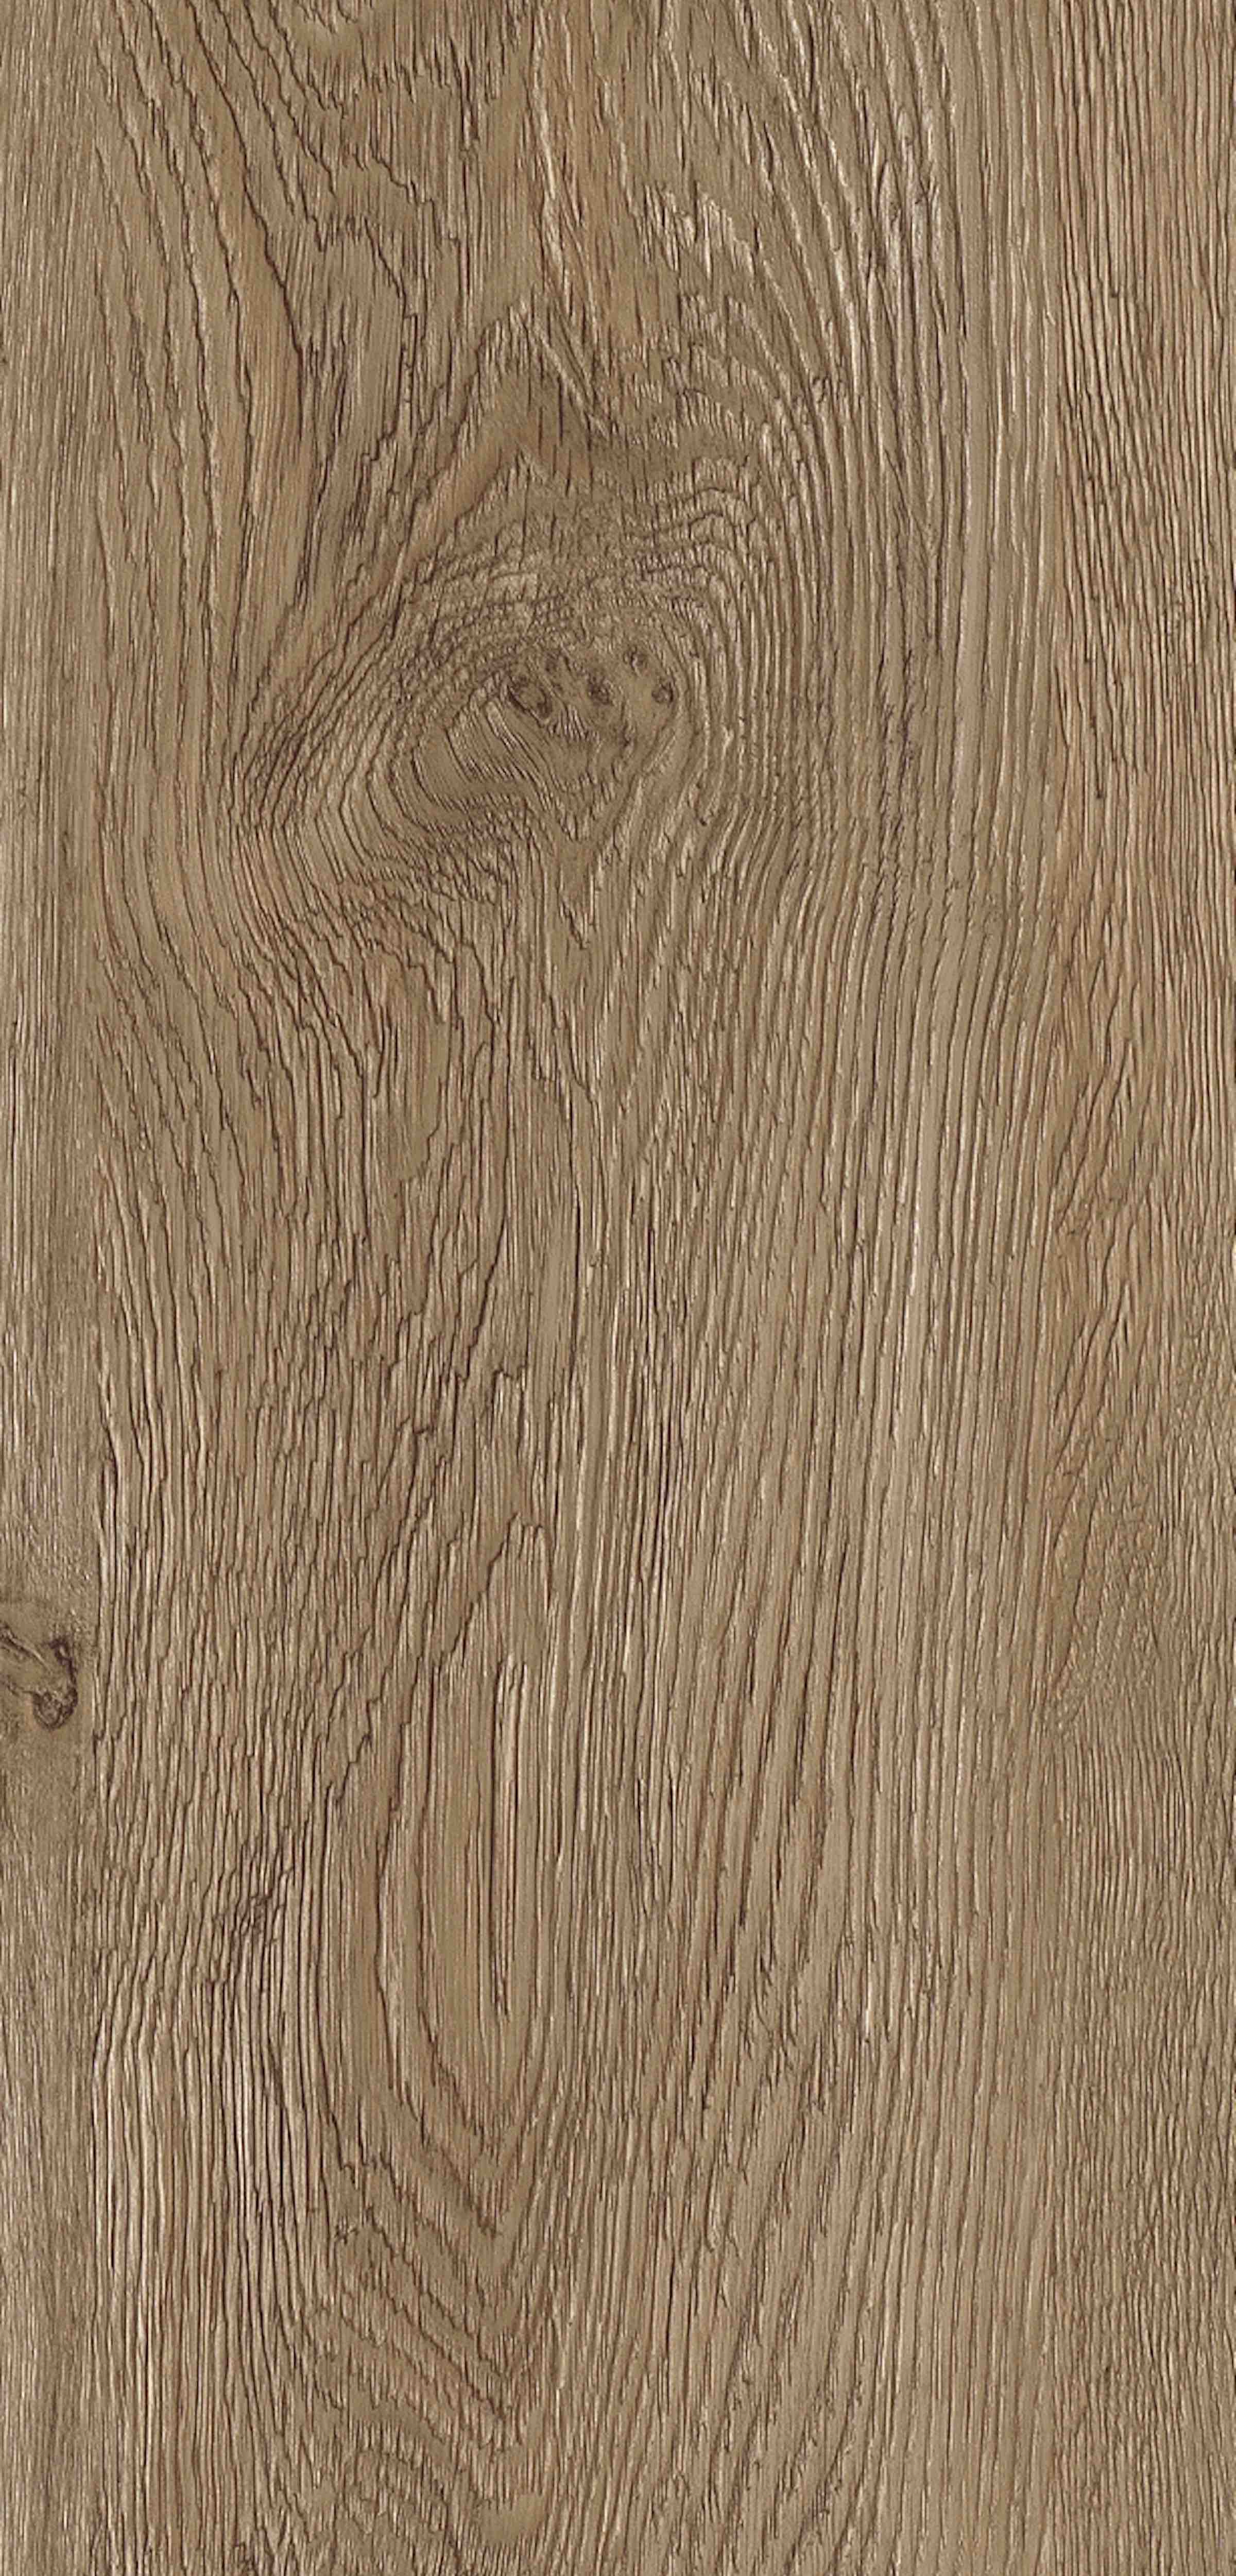 Rappórt | Kentucky Timberwood, 2899 | Paragon Carpet Tiles | Commercial Carpet Tiles